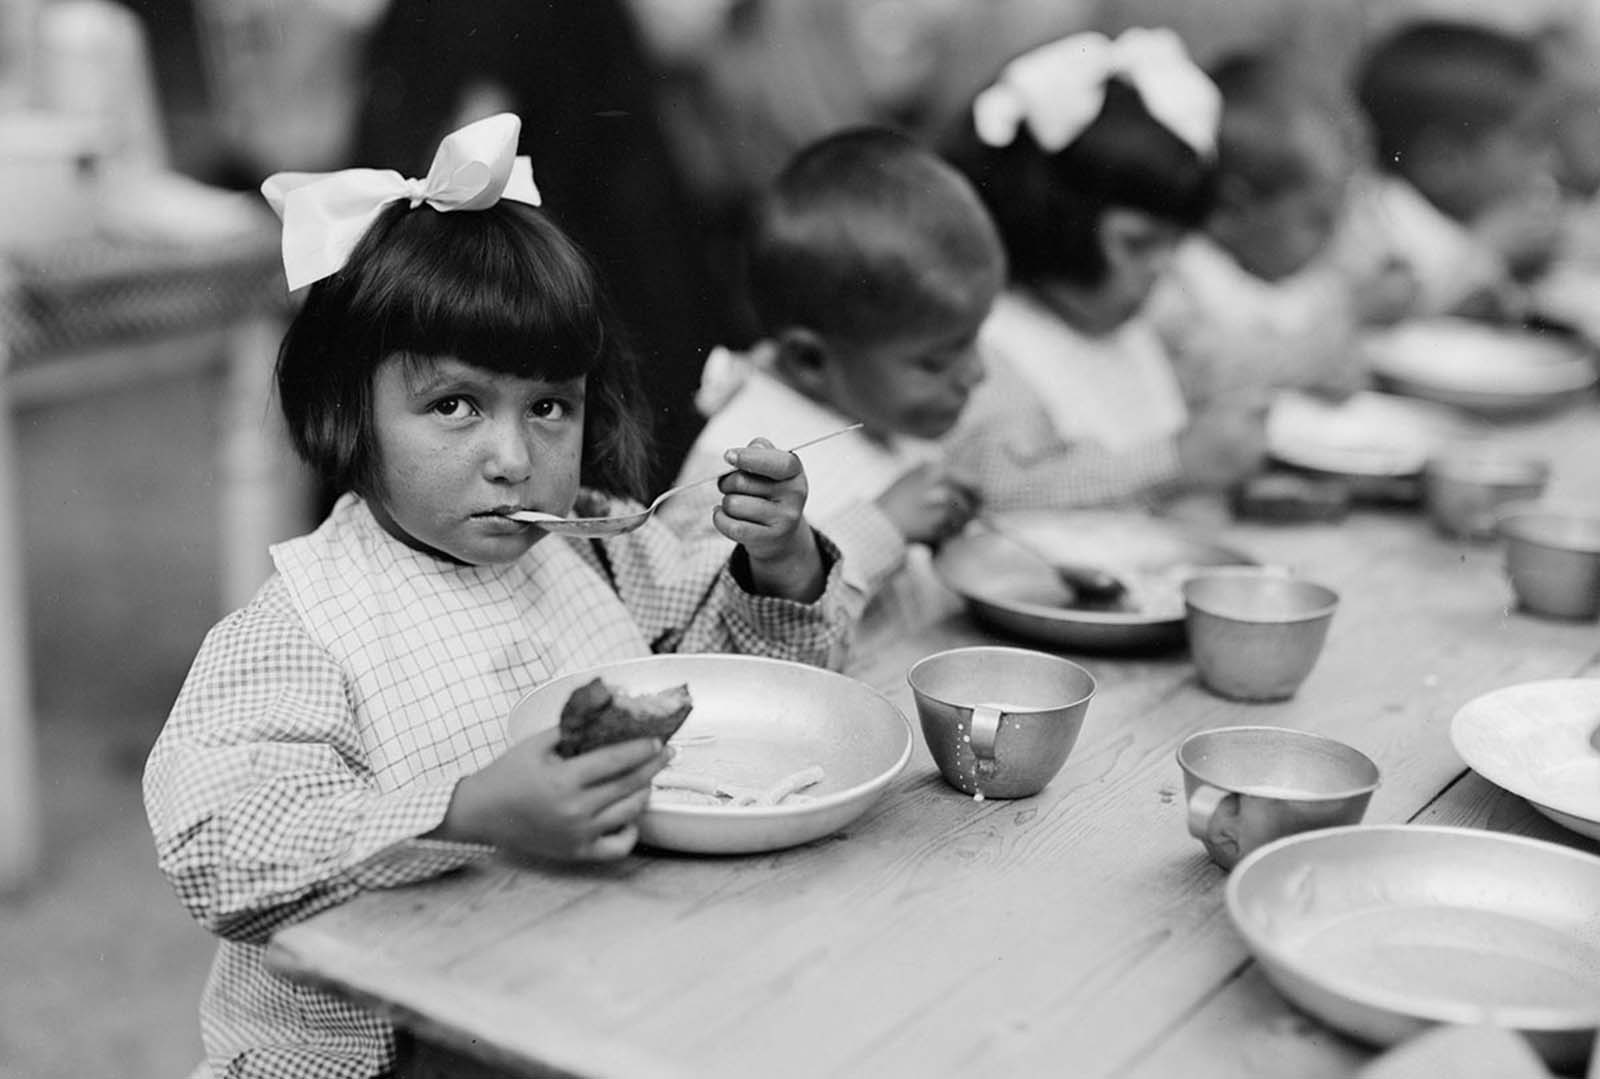 Meal time at La Jonchere, one of the colonies established by the Comite Franco-Americain pour la Protection des Enfants de la Frontiere, which, with aid from the American Red Cross, provides a home and education for about 1,500 children made destitute by the war. July, 1918.